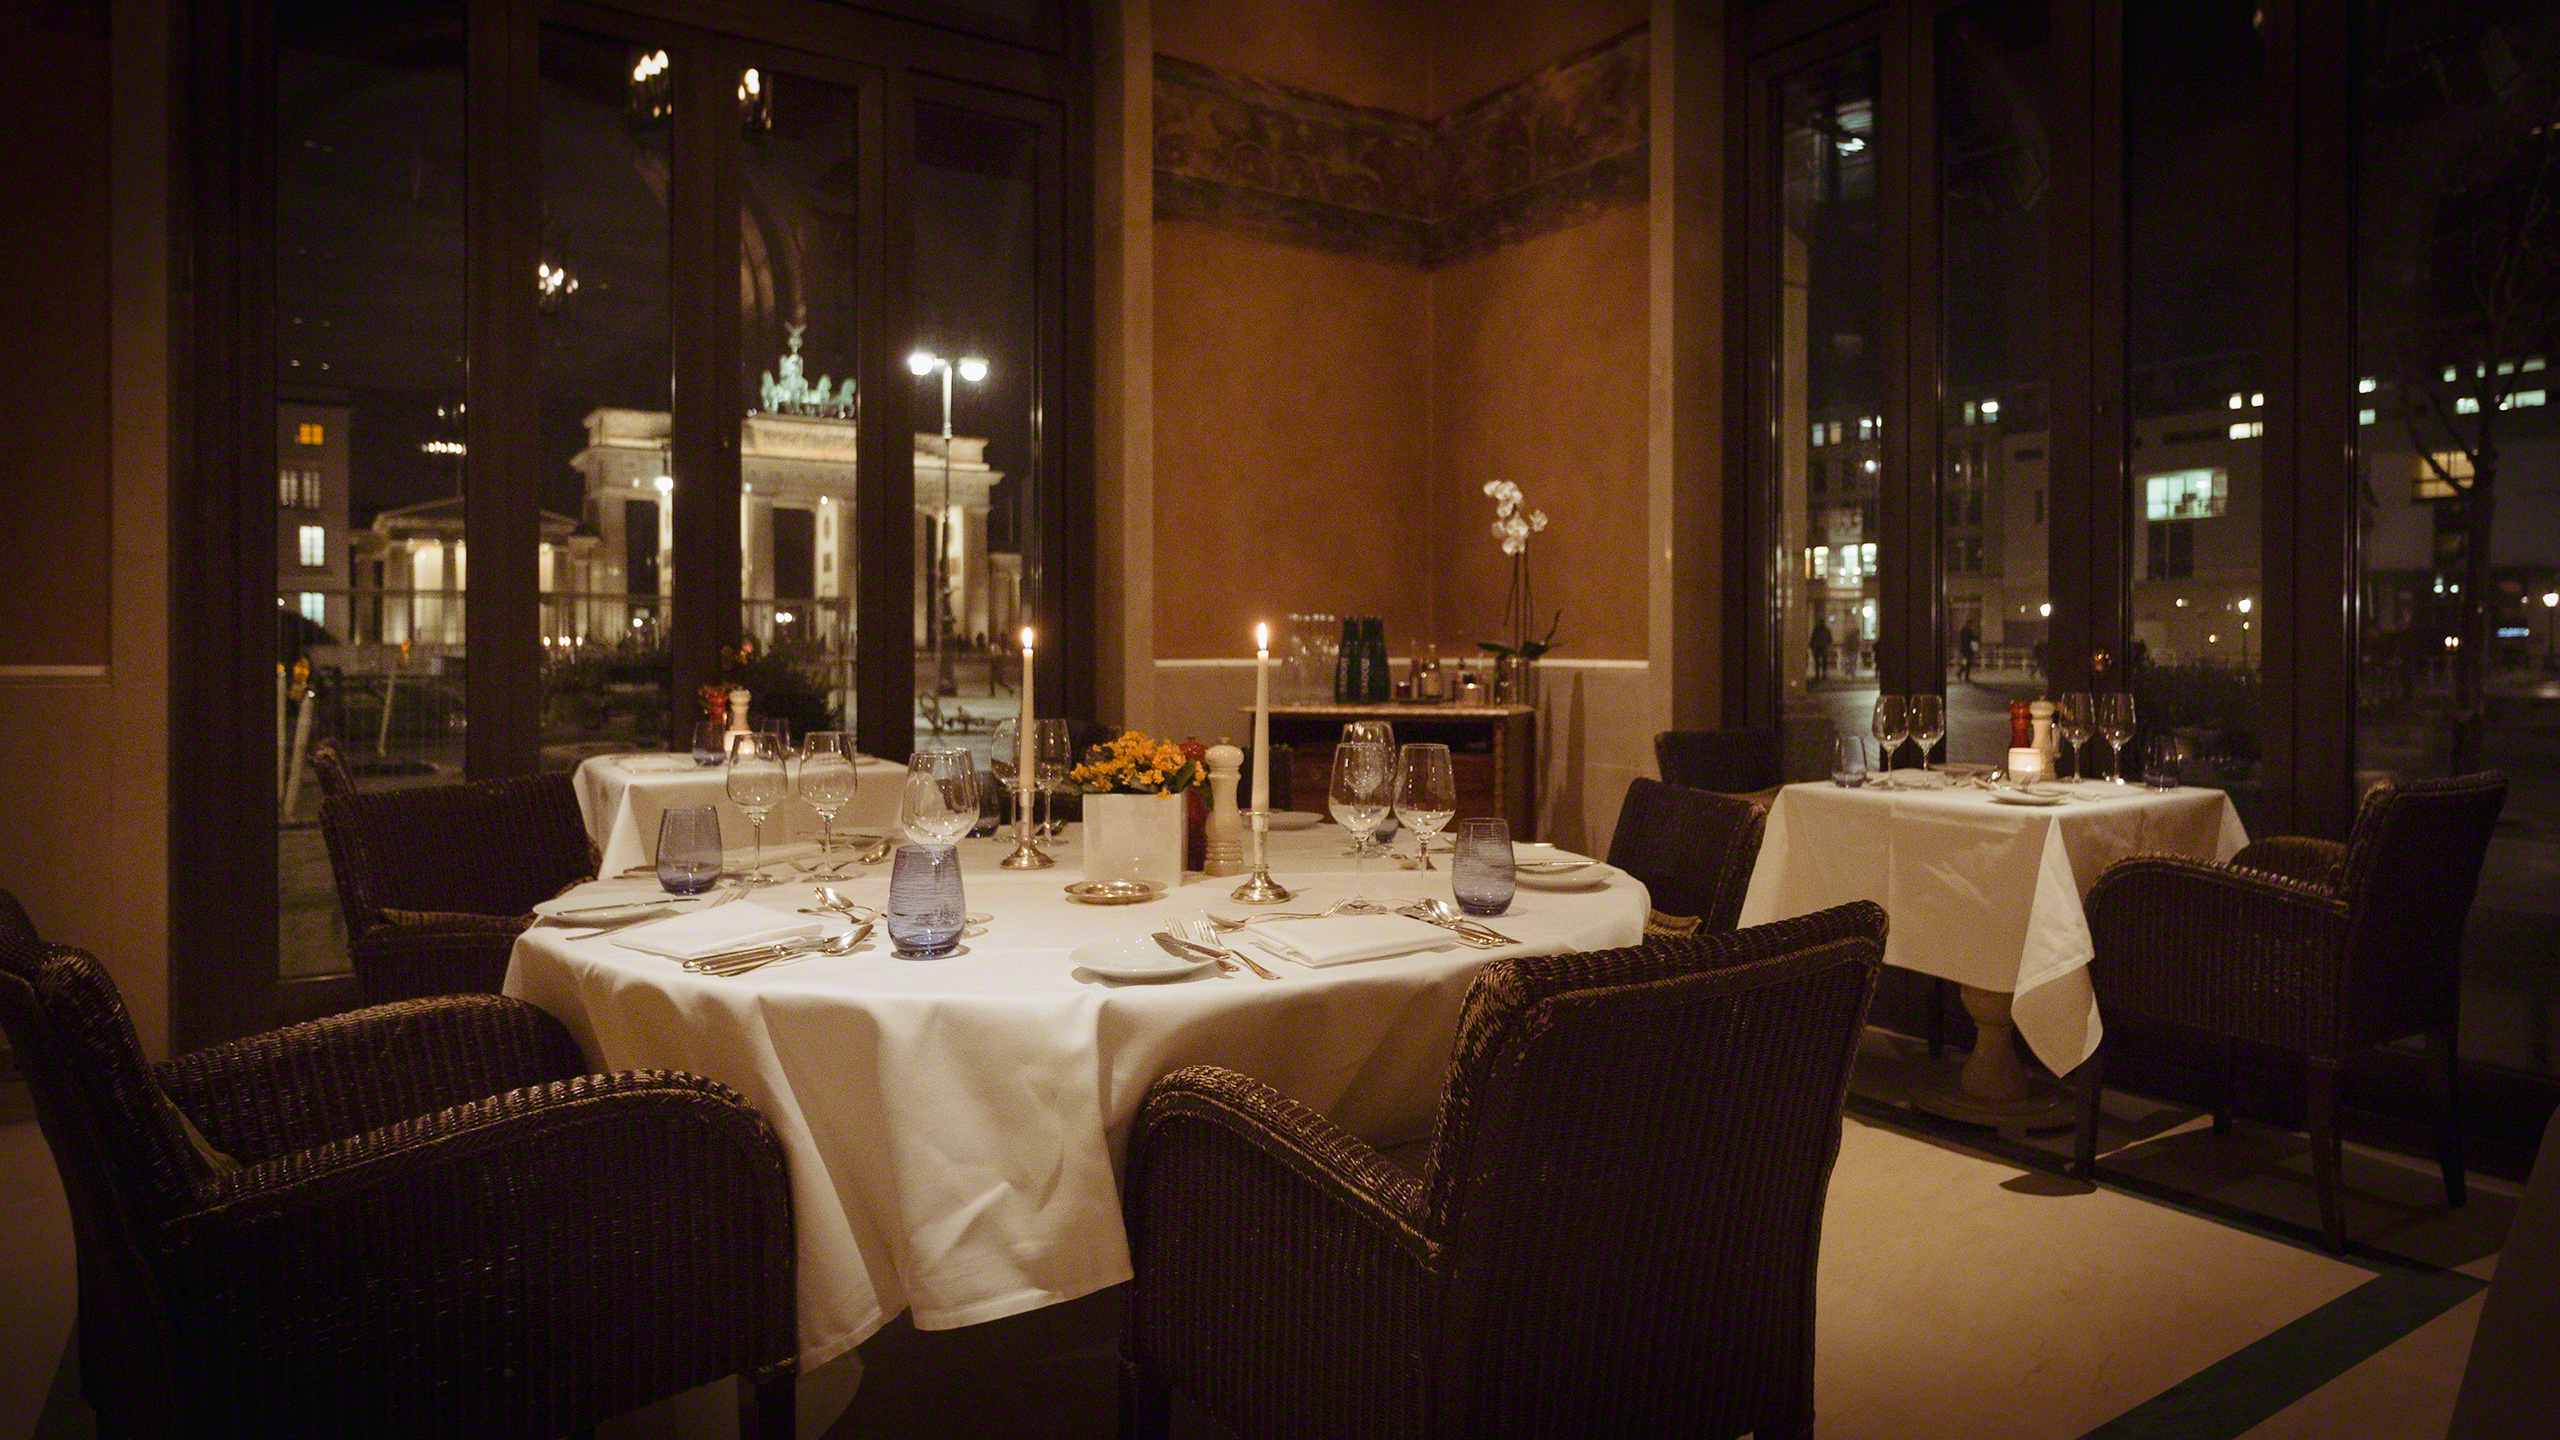 Luxushotel Adon Kempinski Berlin Restaurant Quaree